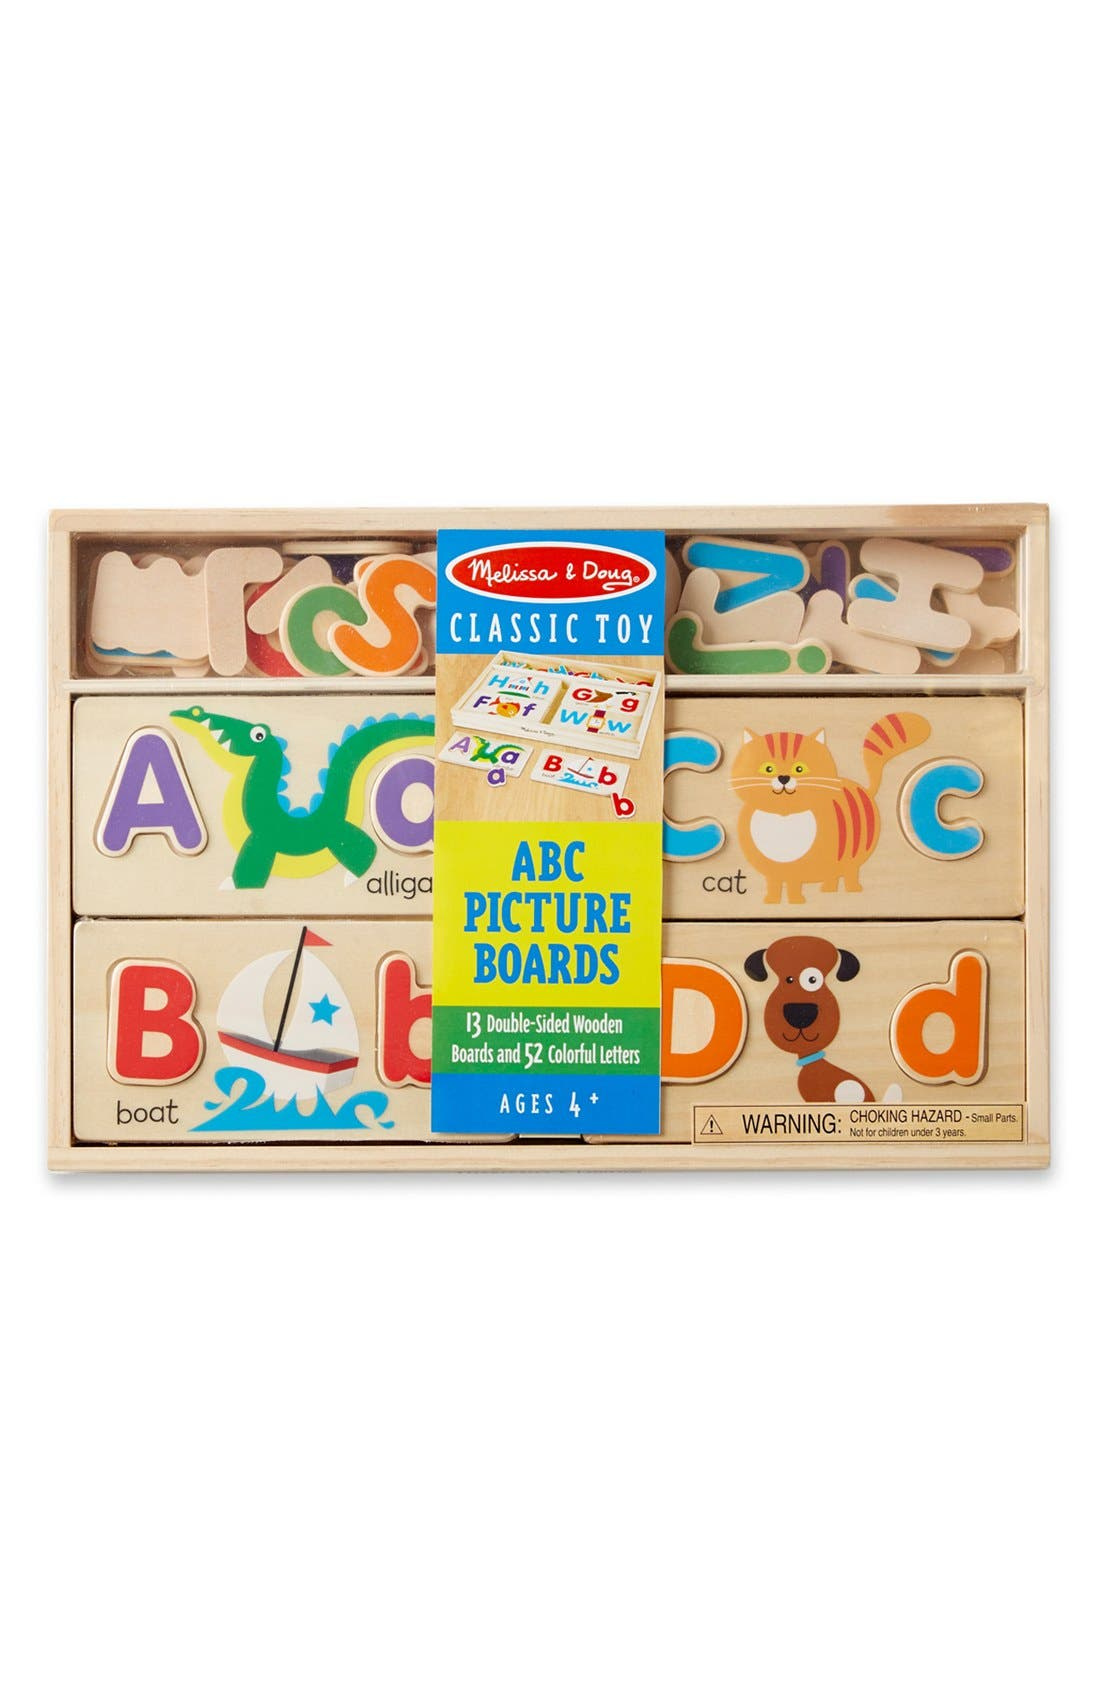 Alternate Image 1 Selected - Melissa & Doug ABC Picture Boards